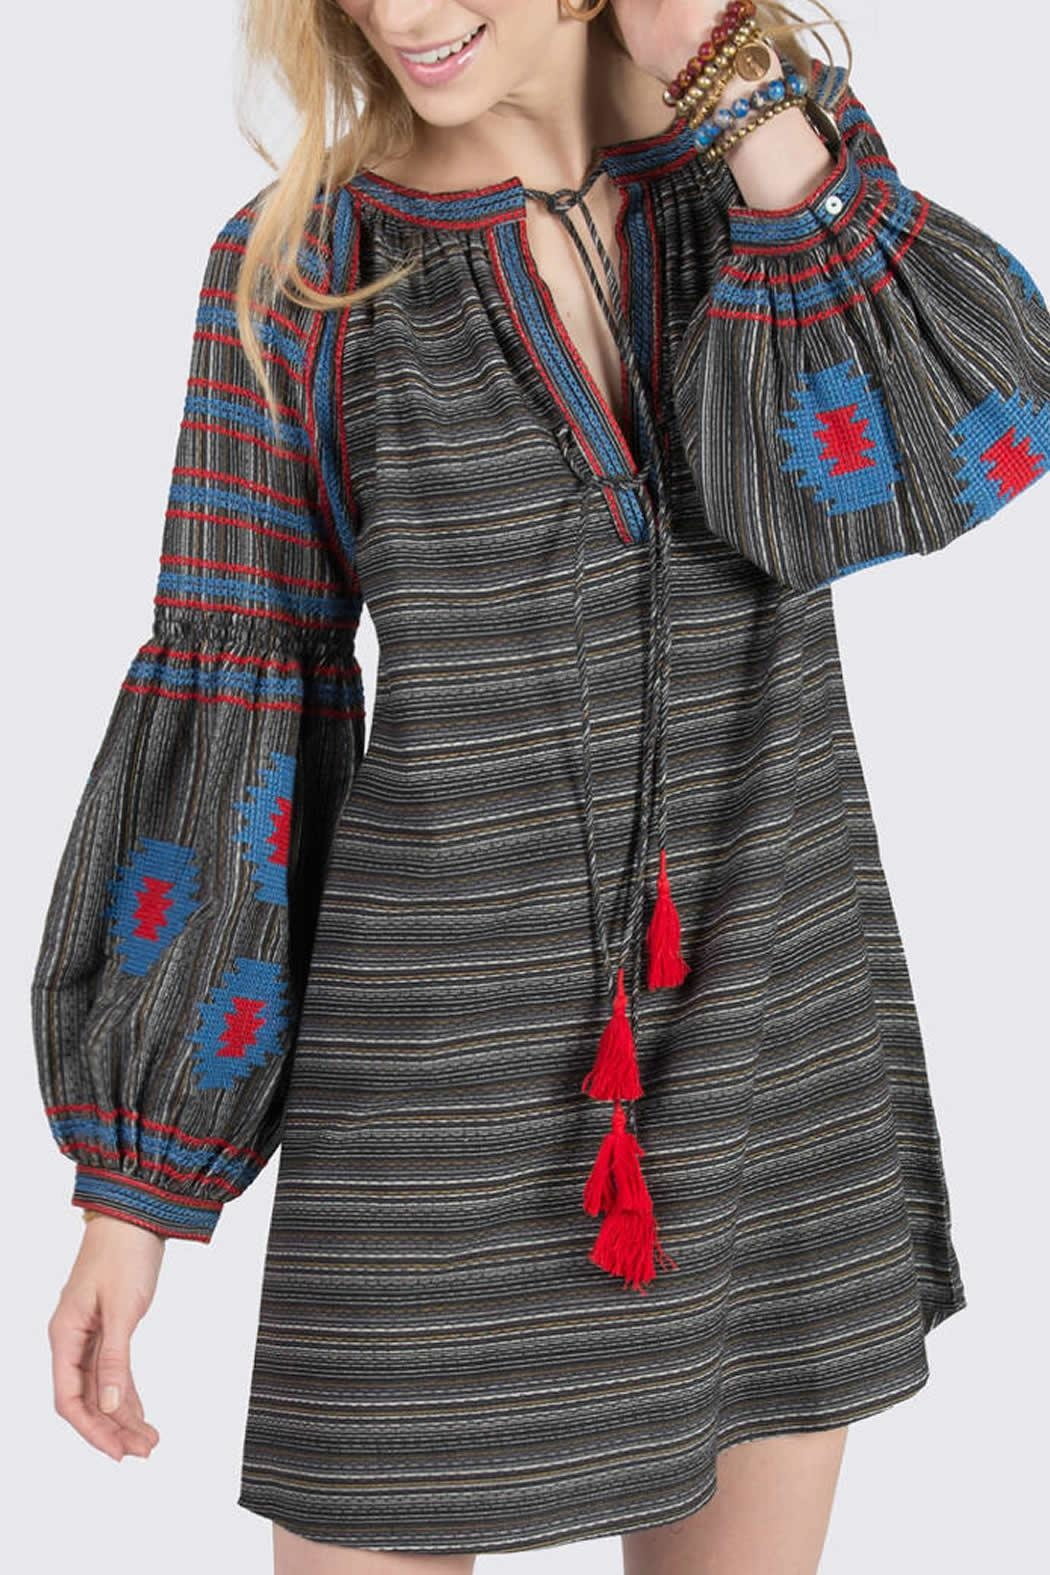 Ivy Jane Striped Aztec Tunic - Front Cropped Image